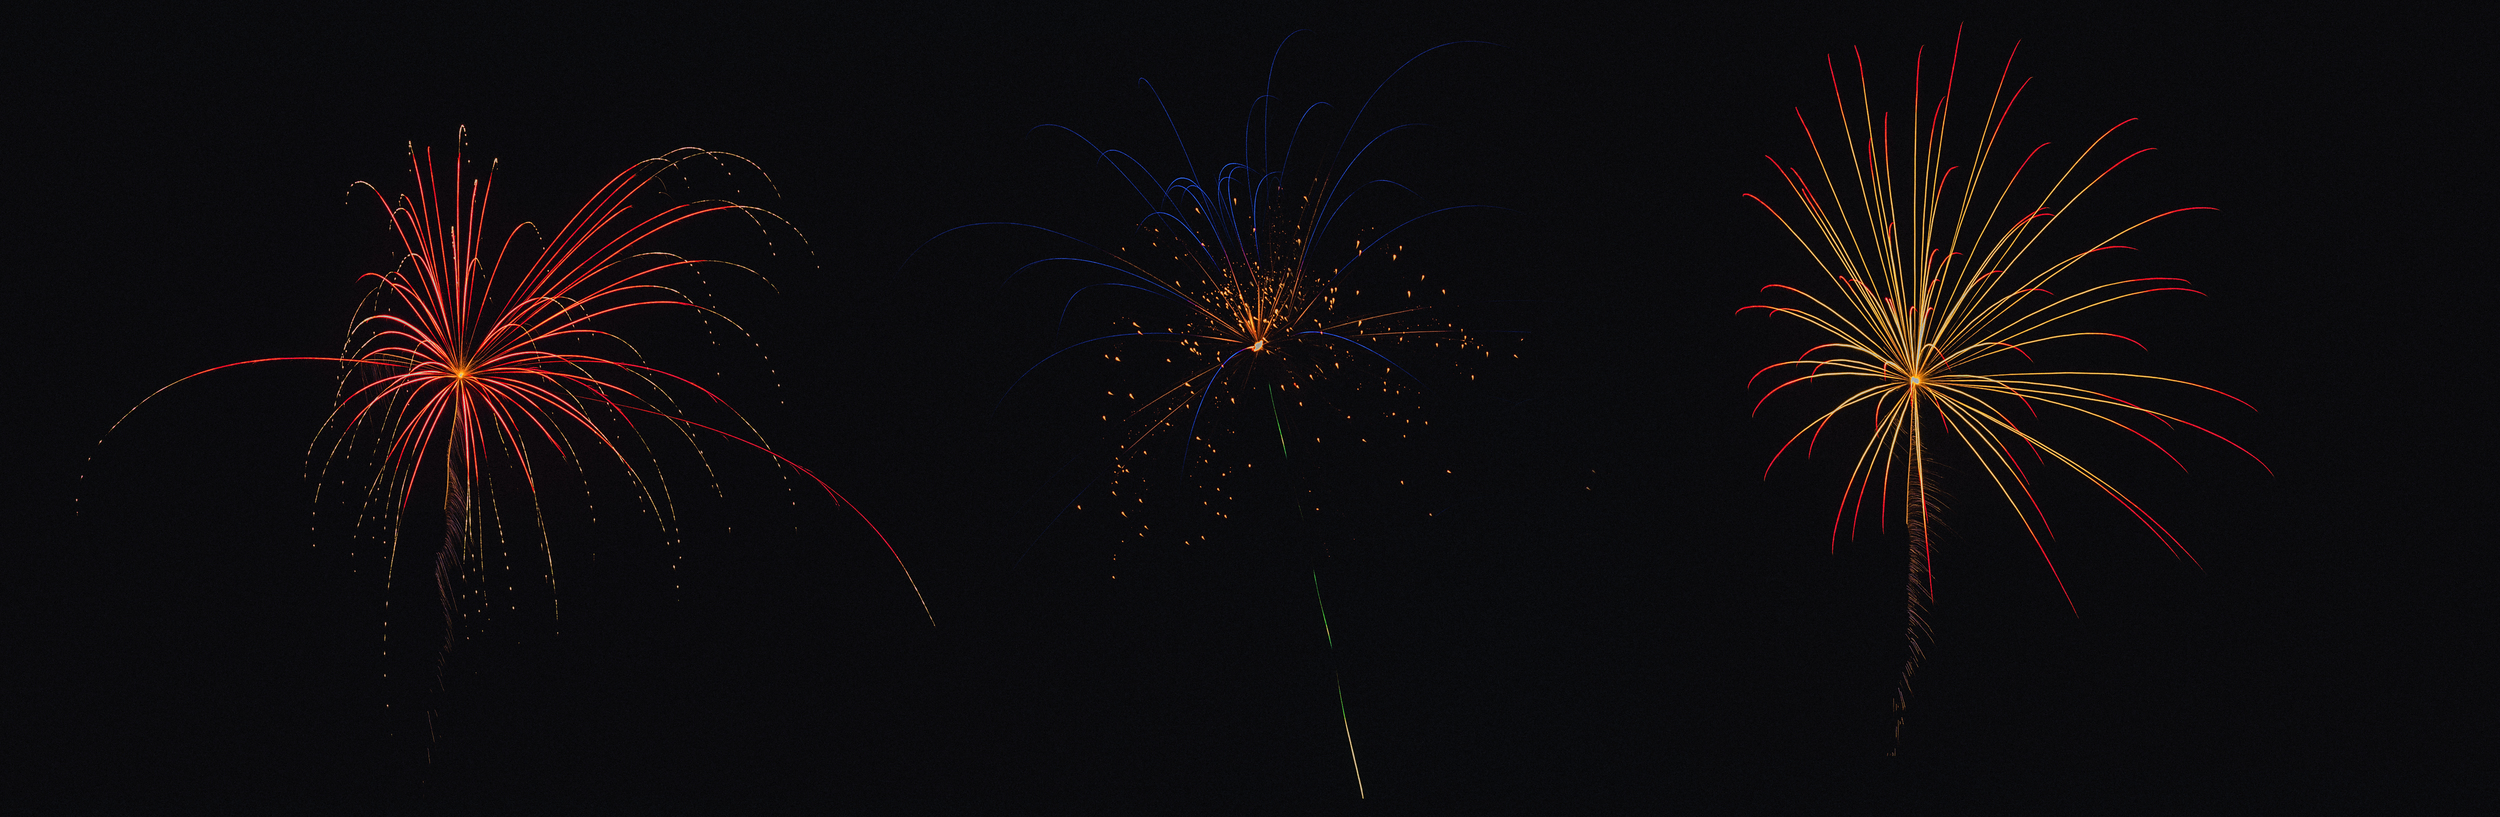 Hello-olivia-photography-long-lsland-family-children-documentary-photographer-childrens-fireworks-happy-fourth